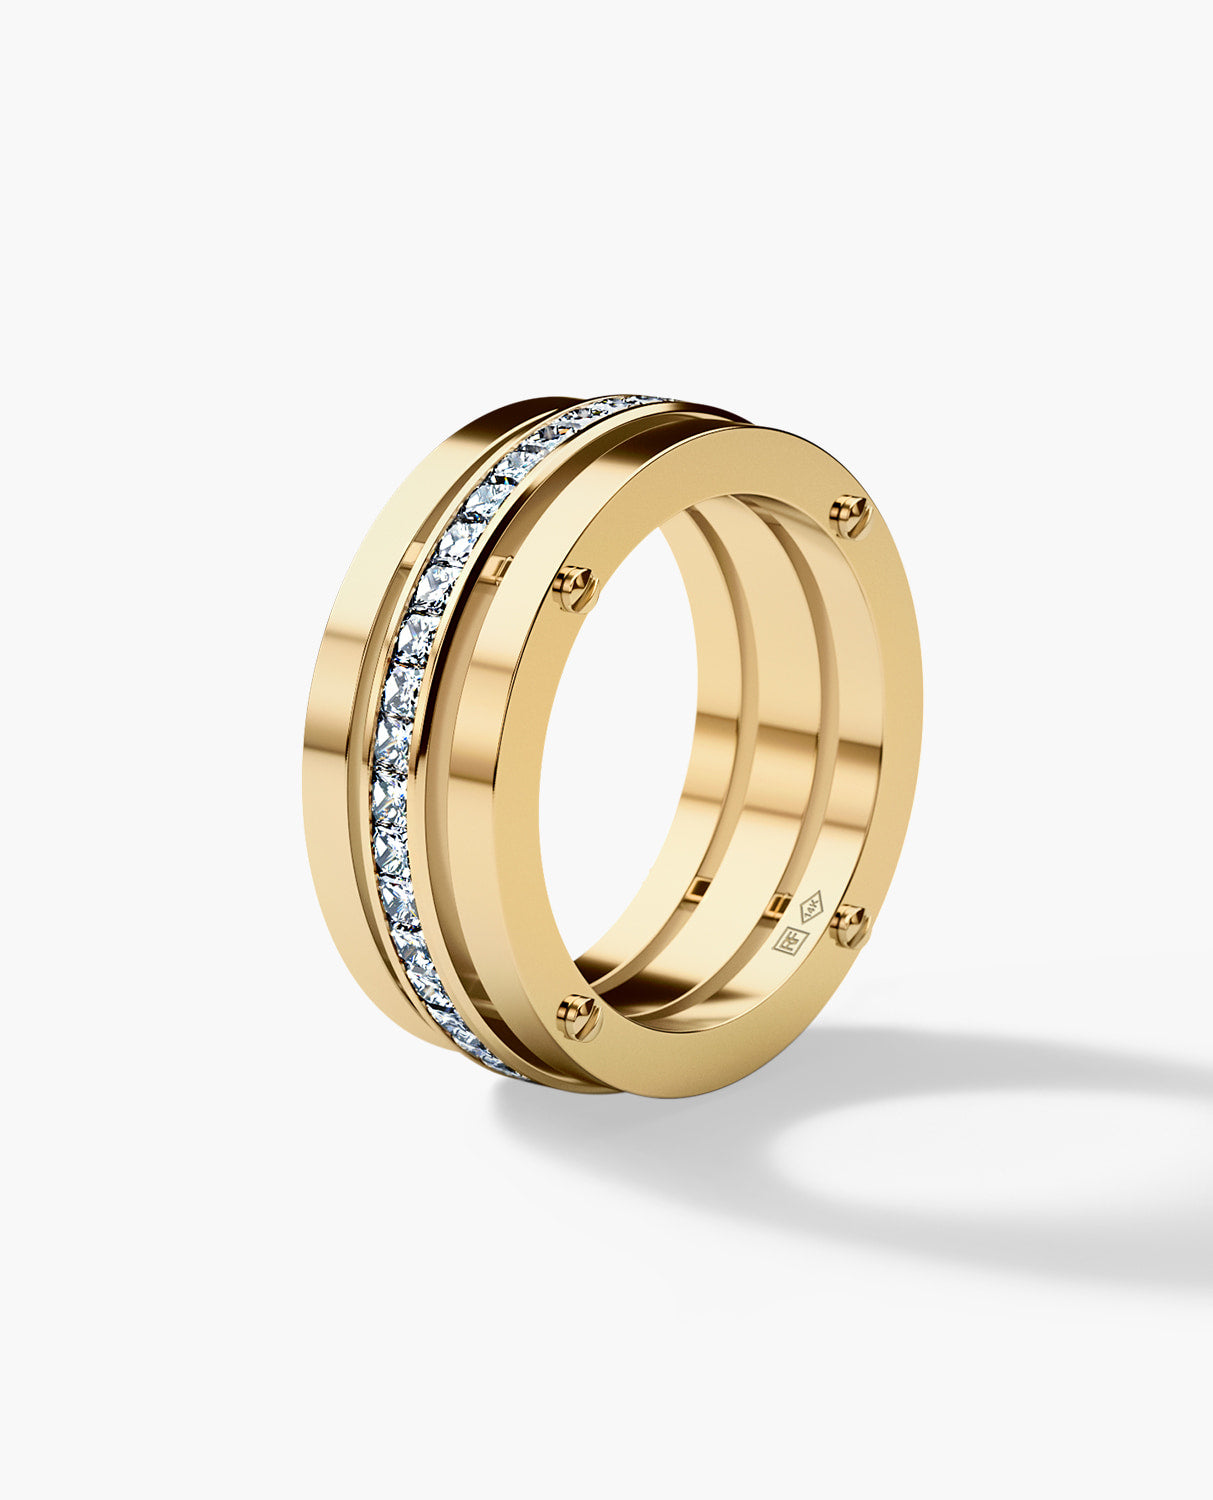 BREWER Mens Gold Wedding Band with Diamonds